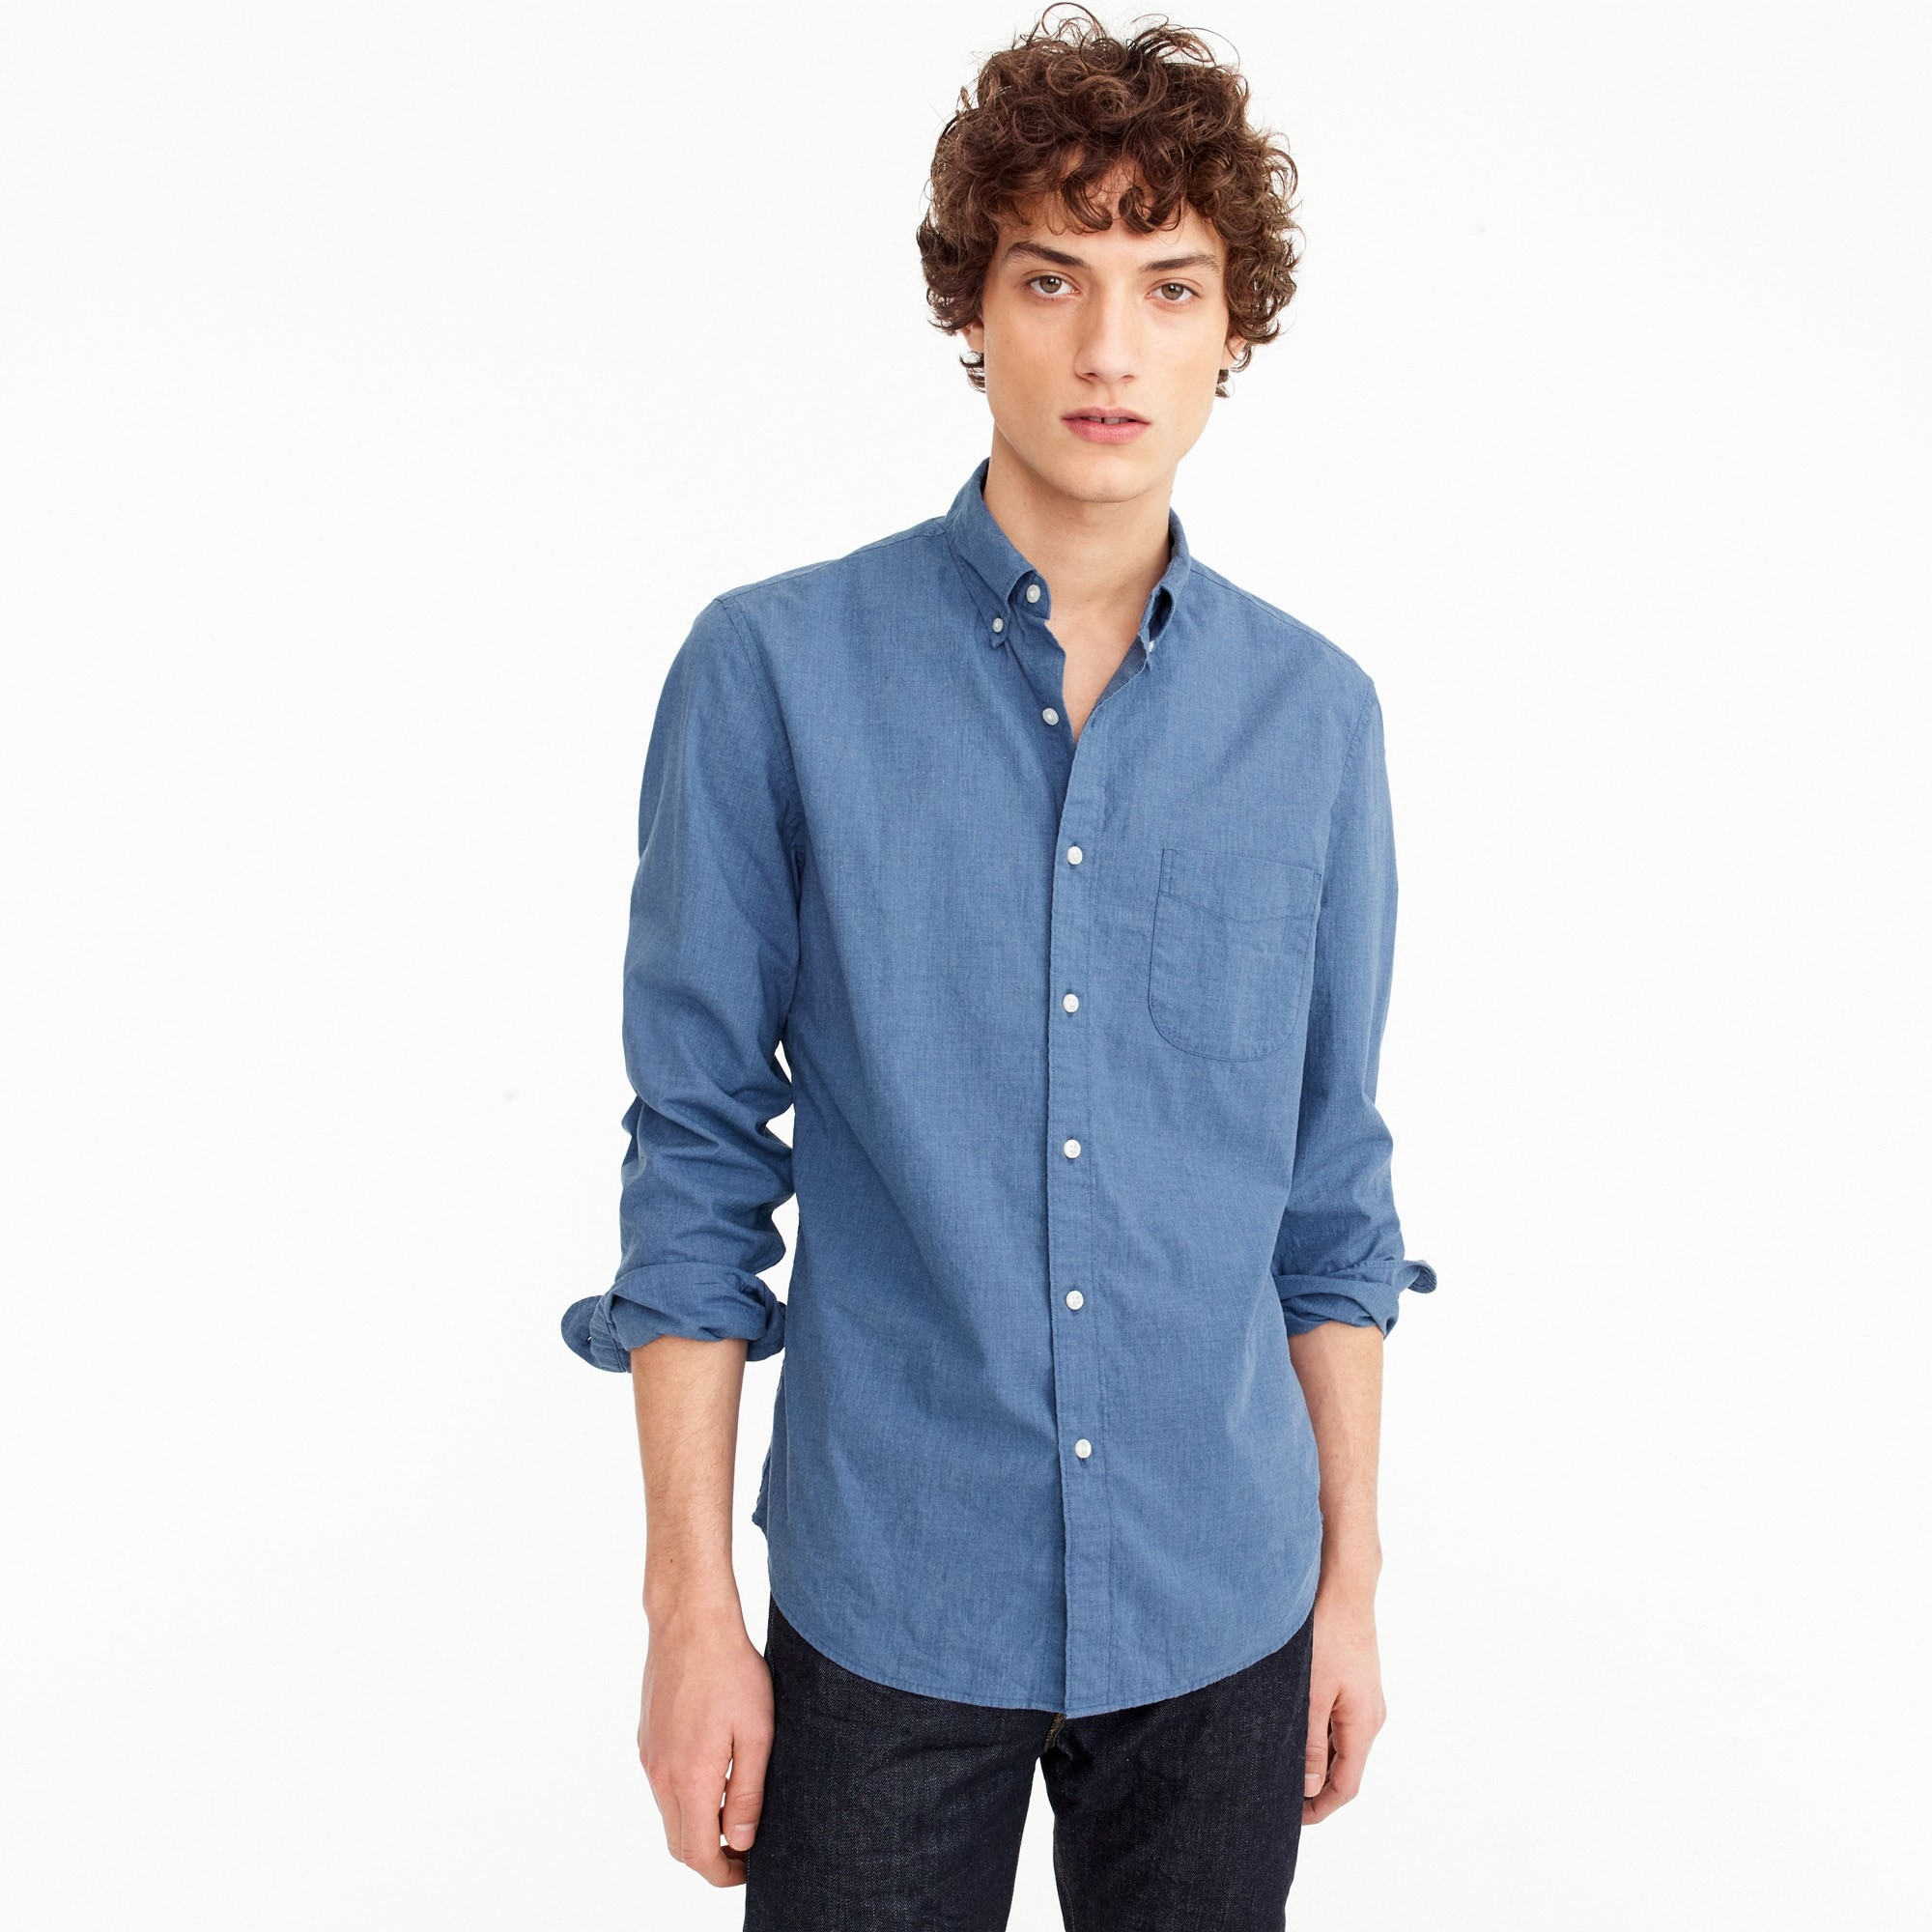 Tall stretch Secret Wash shirt in blue heather poplin